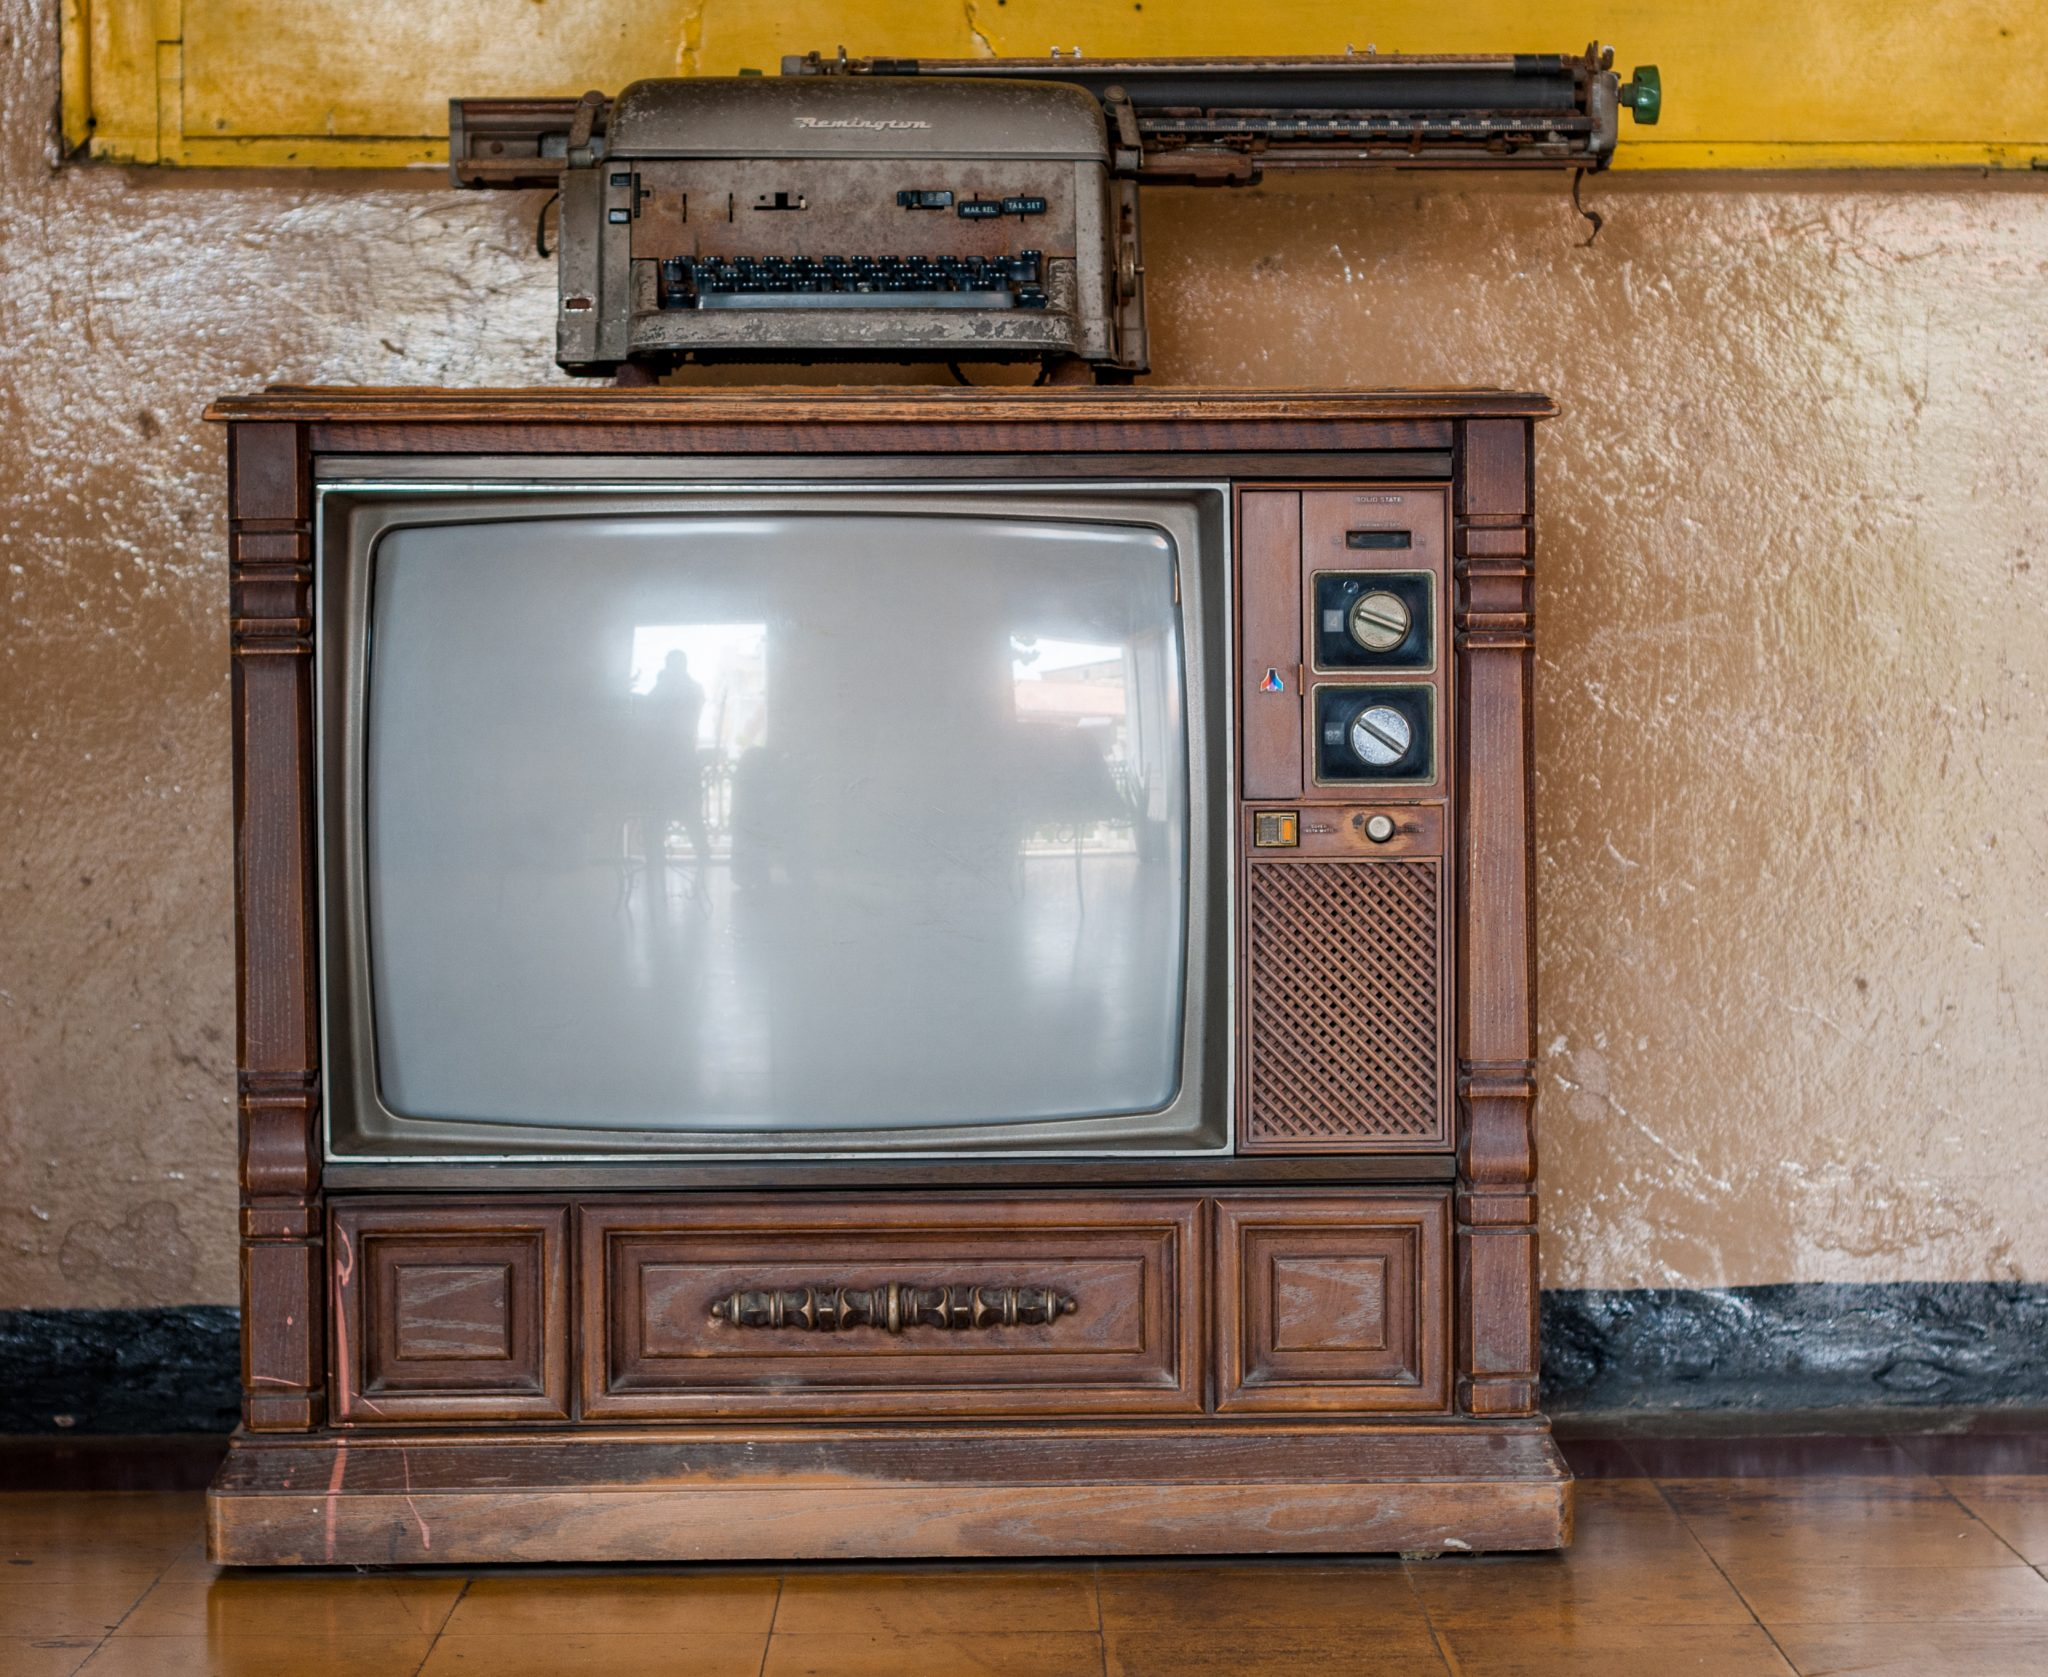 An old-style brown television in front of a tan wall